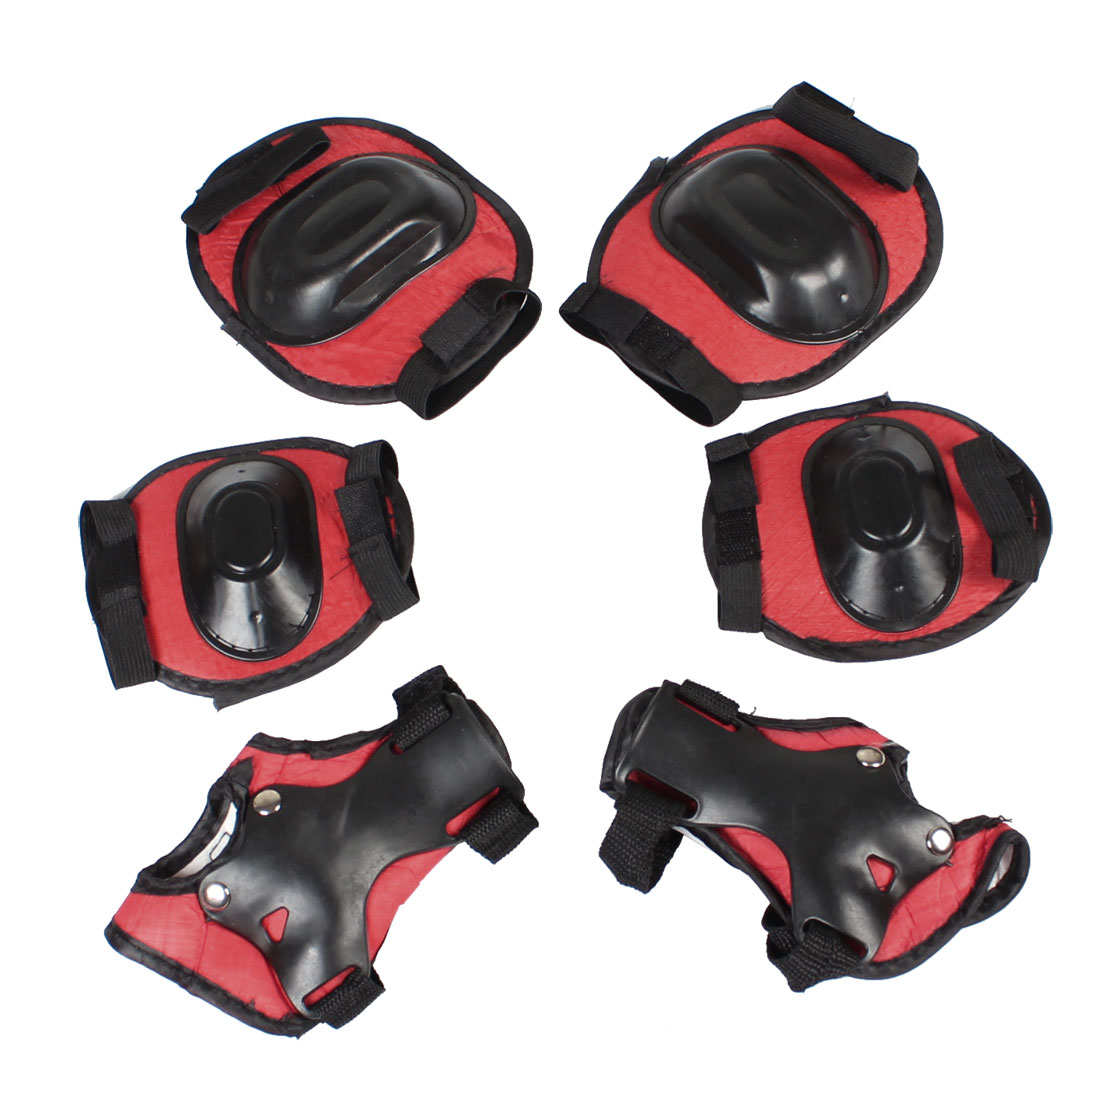 Children Skating Pads Palm Knee Elbow Support Protector Set Black Red